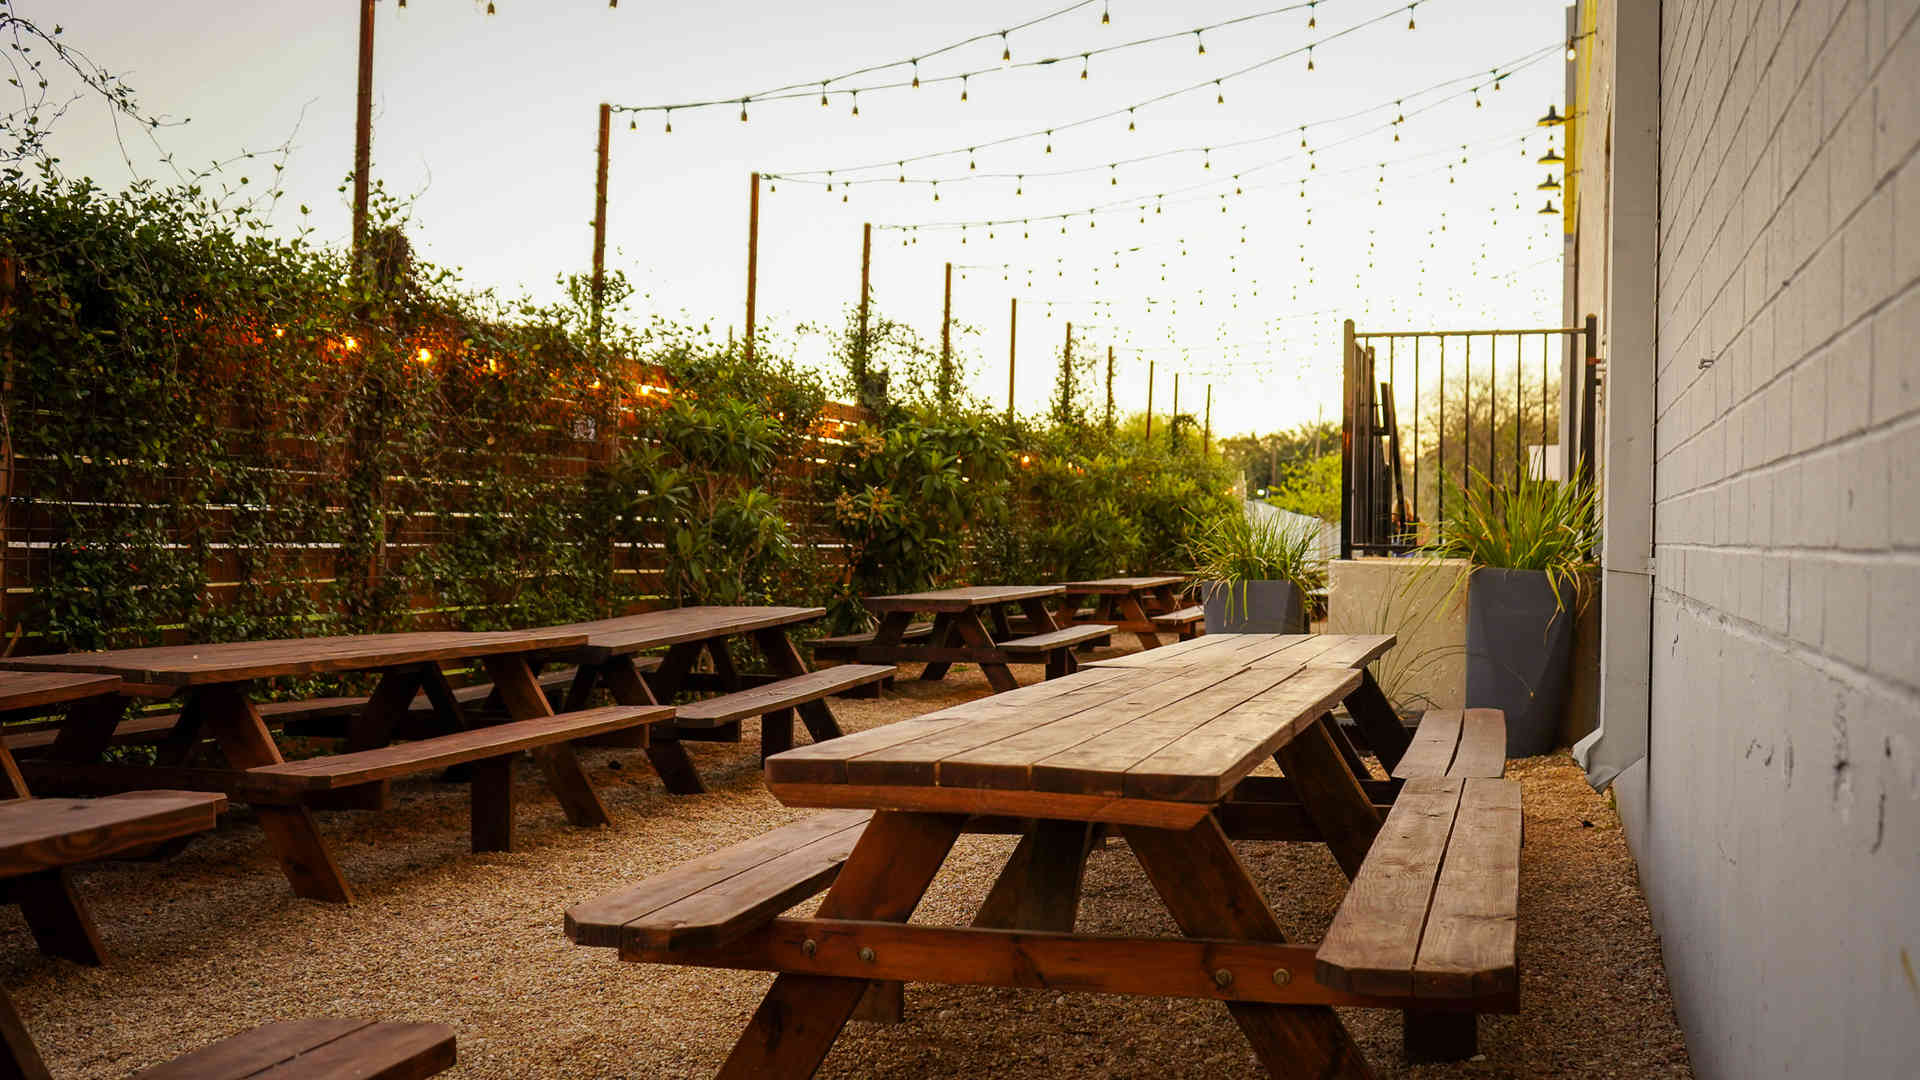 Your new favorite beer garden.